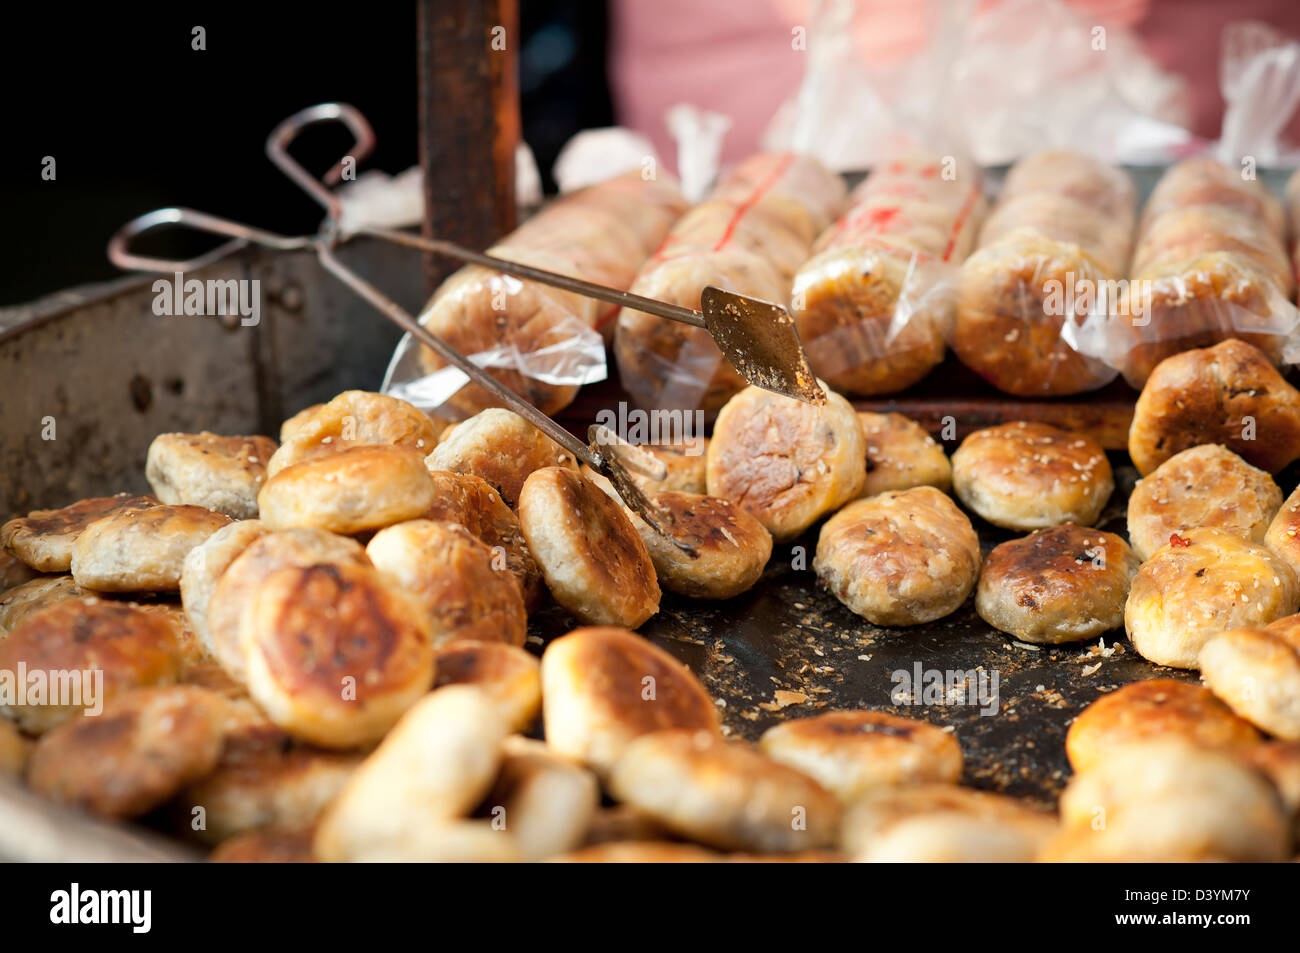 Savory cakes for sale in Tunxi old town, Anhui Province, China - Stock Image